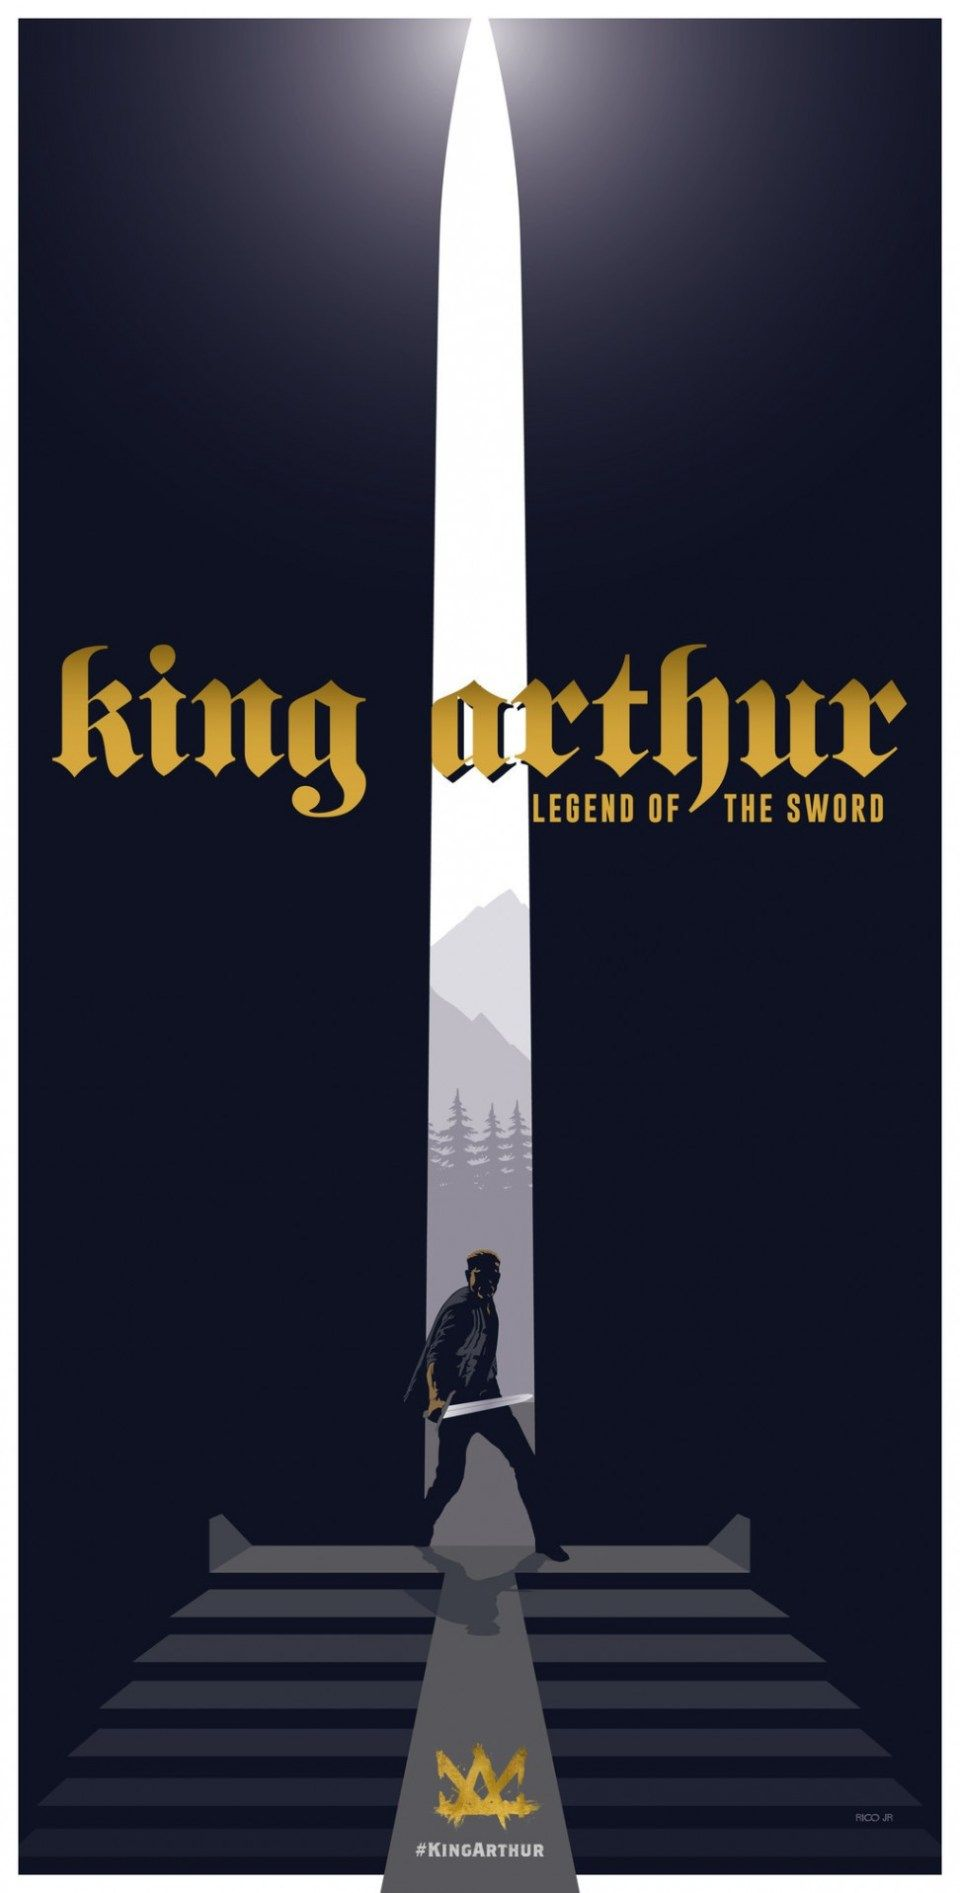 How King Arthur Legend Of The Sword Wallpaper Is Going To Change Your Business Strategies King Arthur Legend Of The Sword Wallpaper Http Koning Arthur Koning